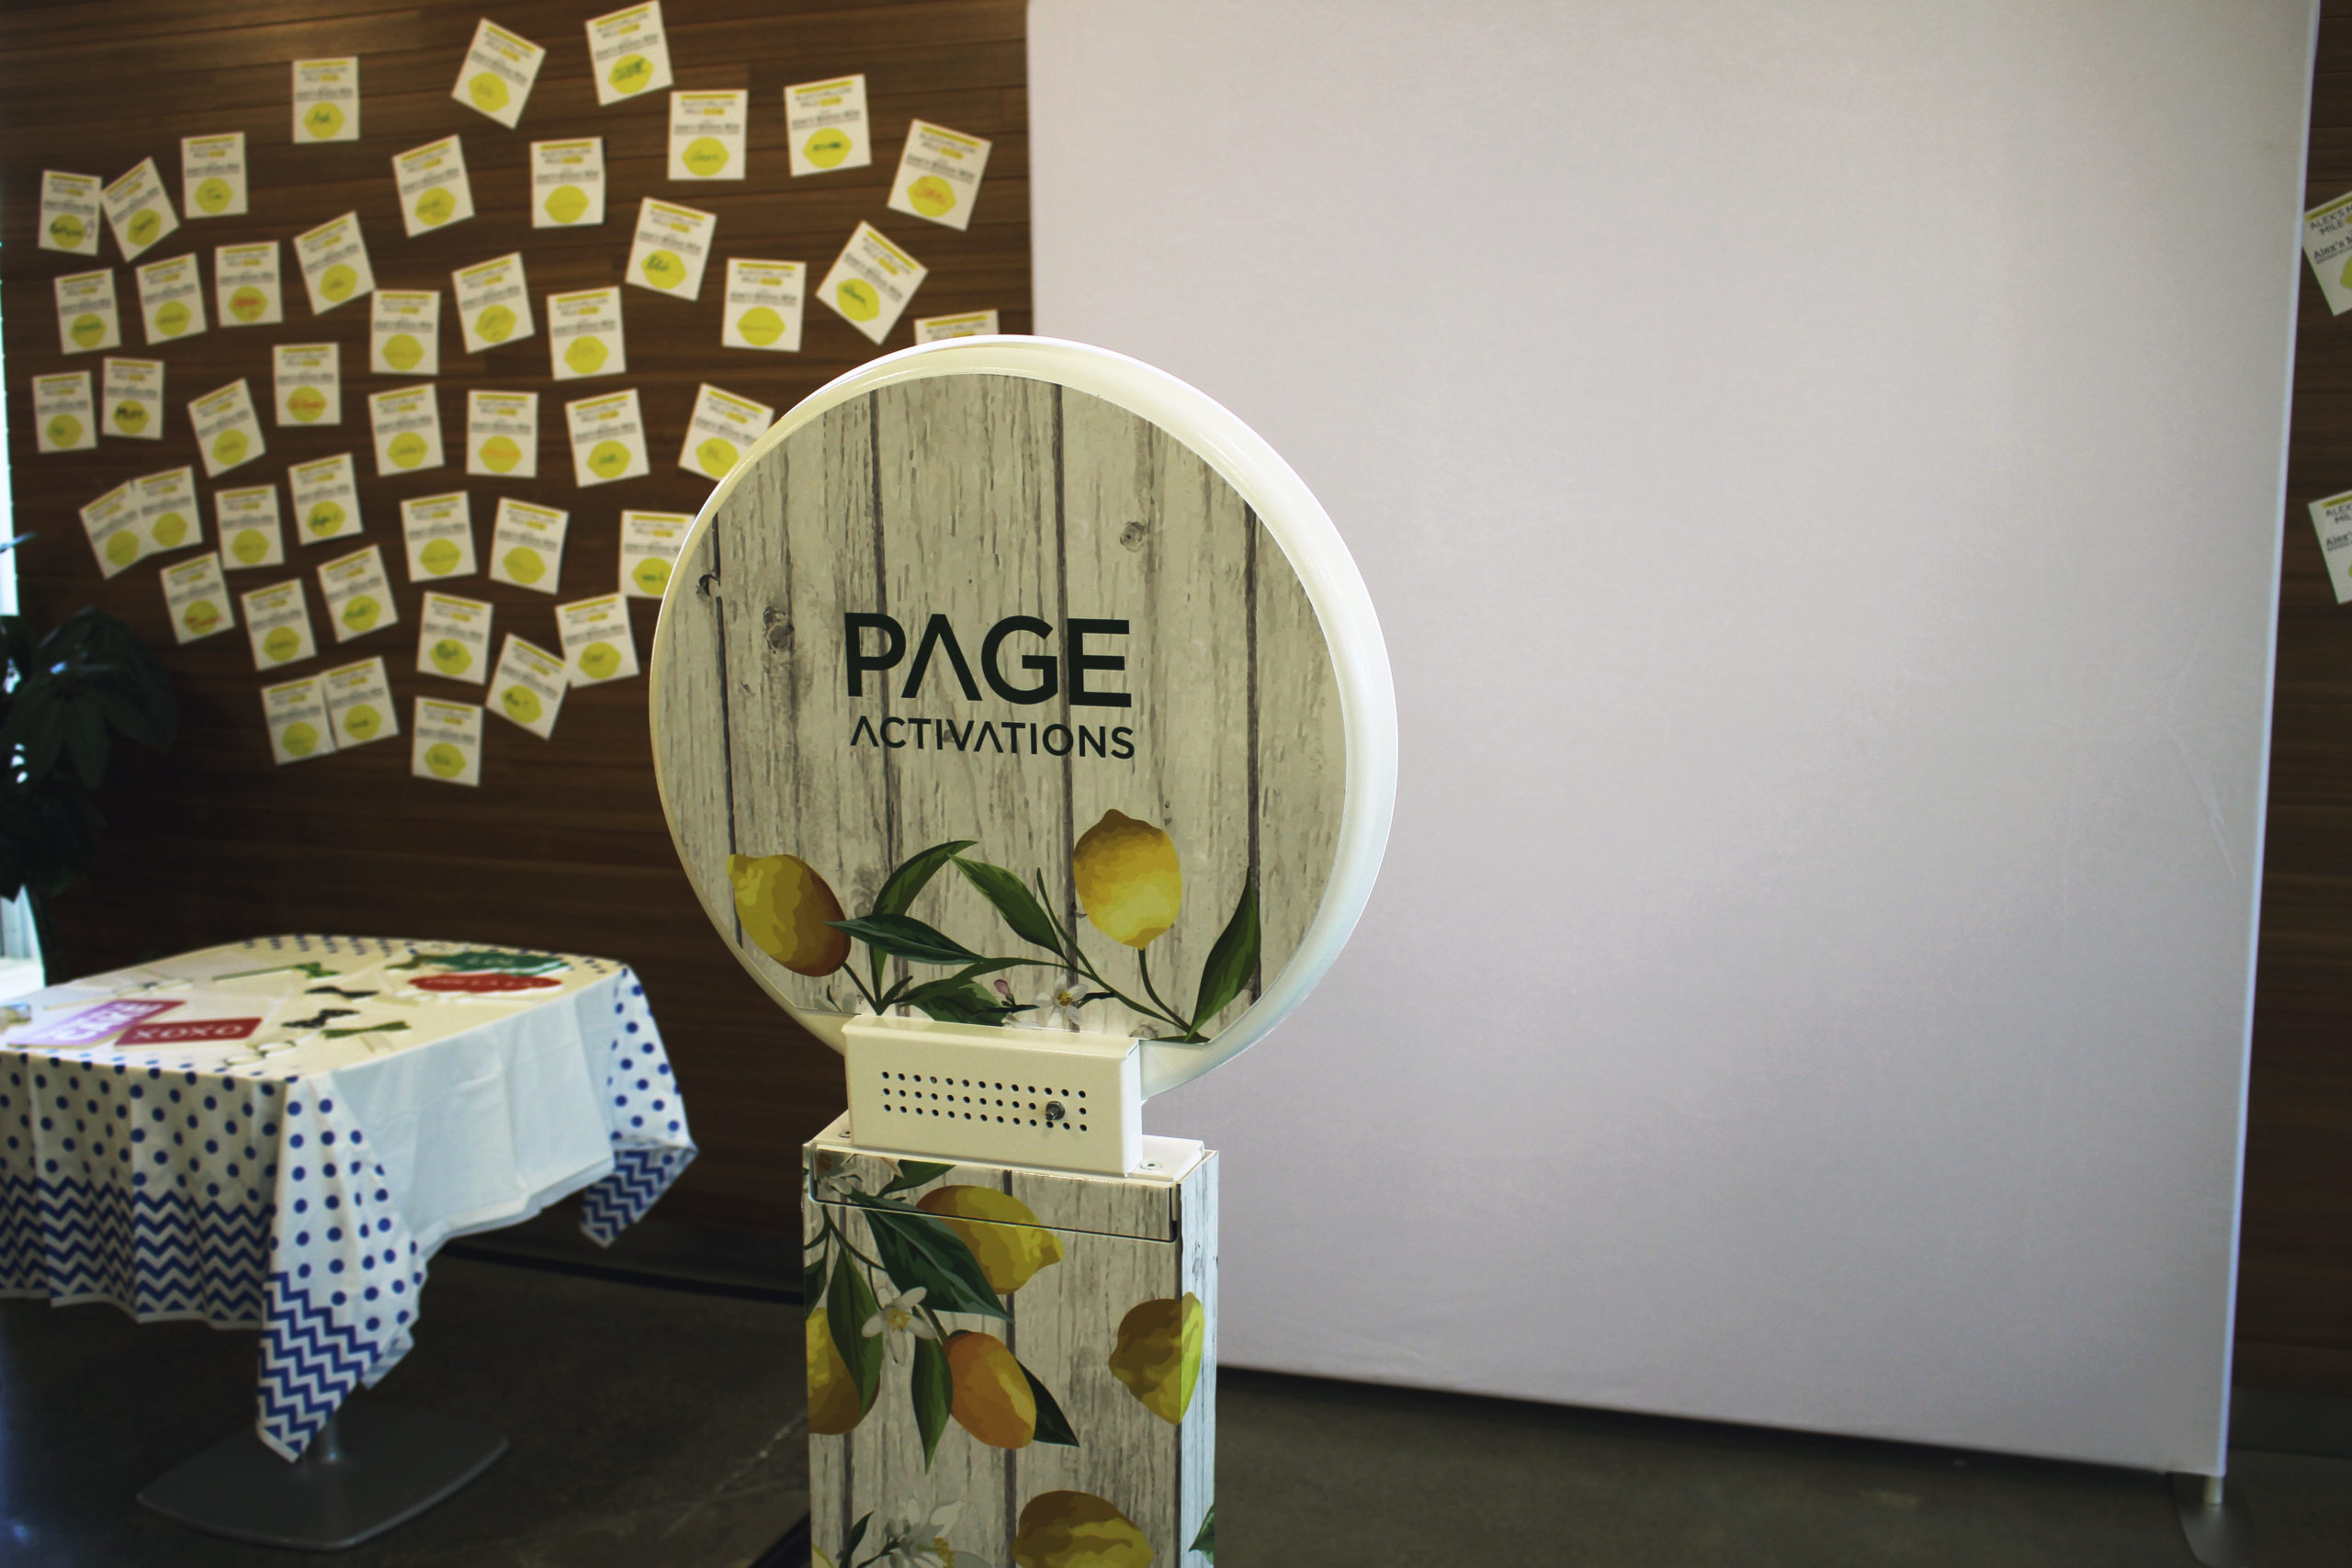 Custom vinyl wrap photobooth with props and white backdrop